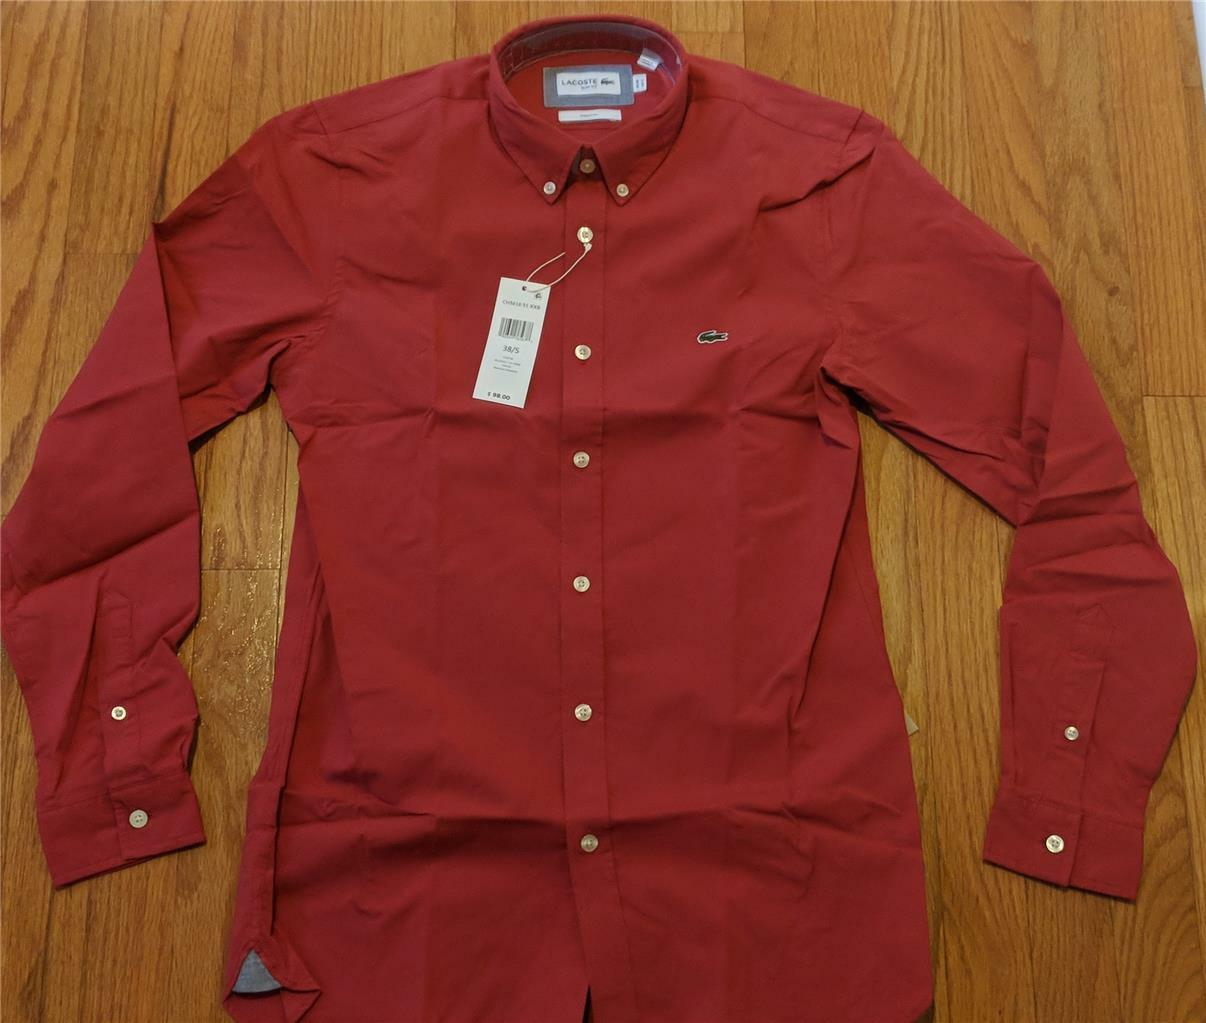 363dda0e Mens Lacoste LS Stretch Oxford Button Woven Shirt Intense Red 44 XL ...